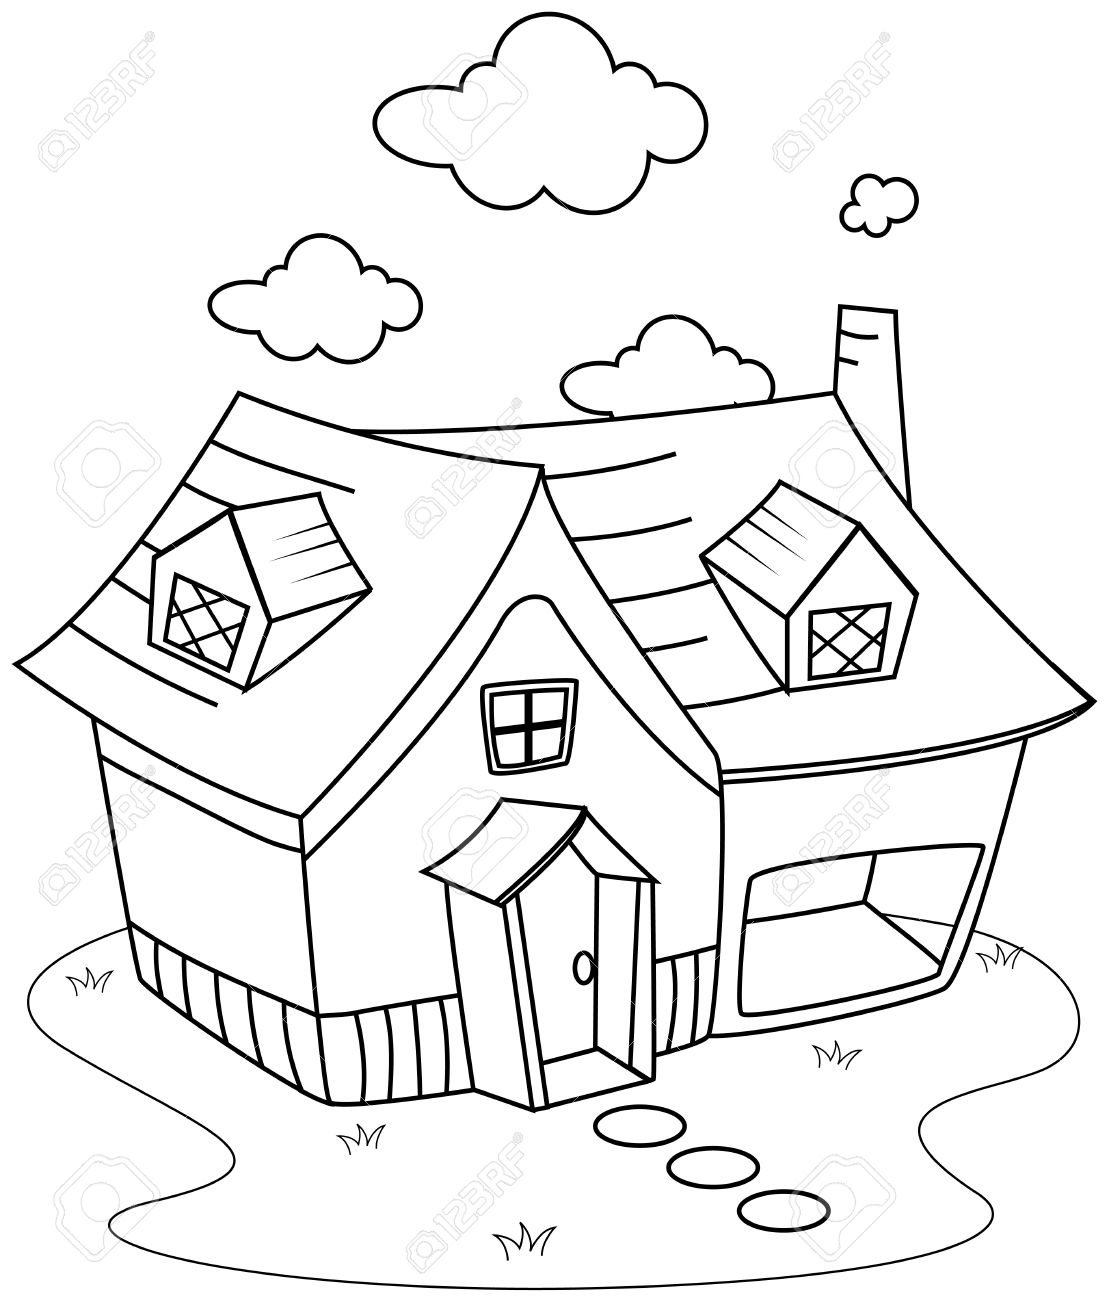 Line Art Illustration of a Cute Little House Stock Photo - 8517173